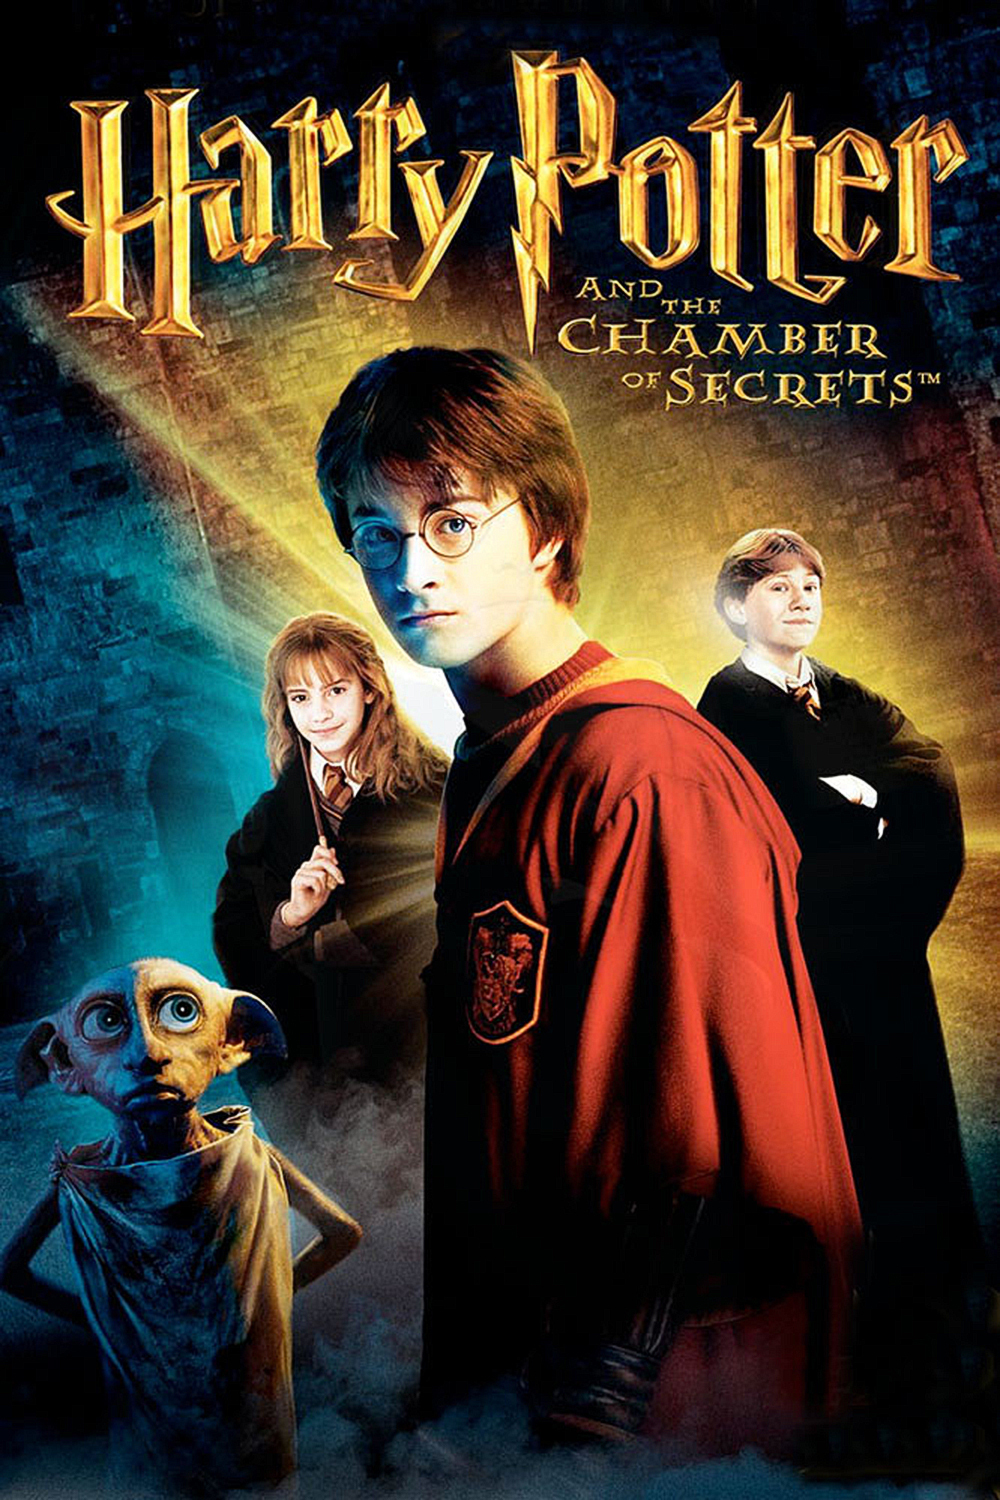 Harry potter and the chamber of secrets wallpaper